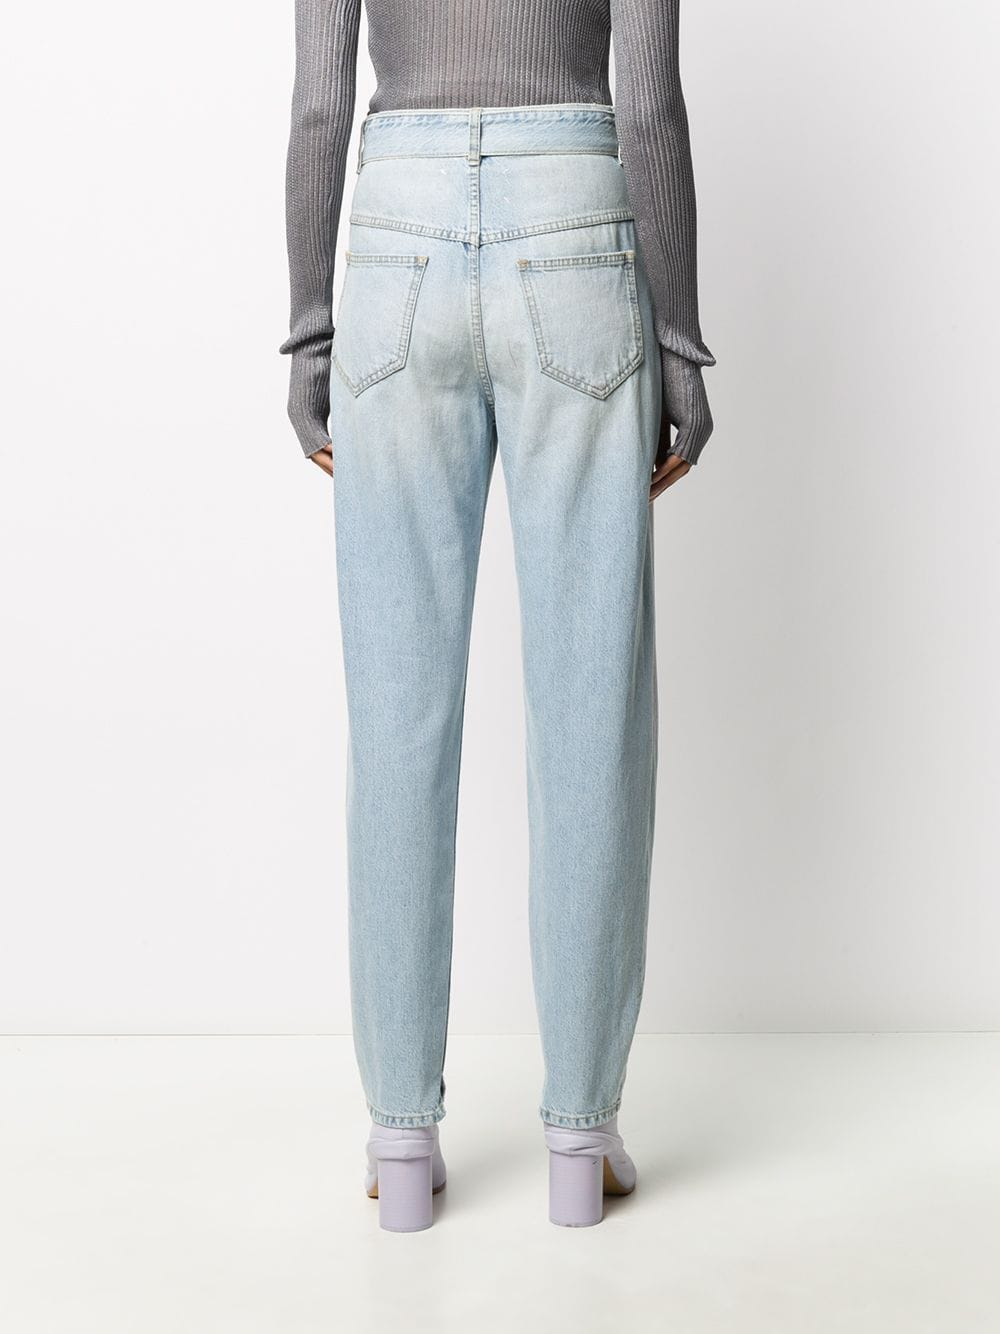 MAISON MARGIELA WOMEN BELTED JEANS WITH SLIT